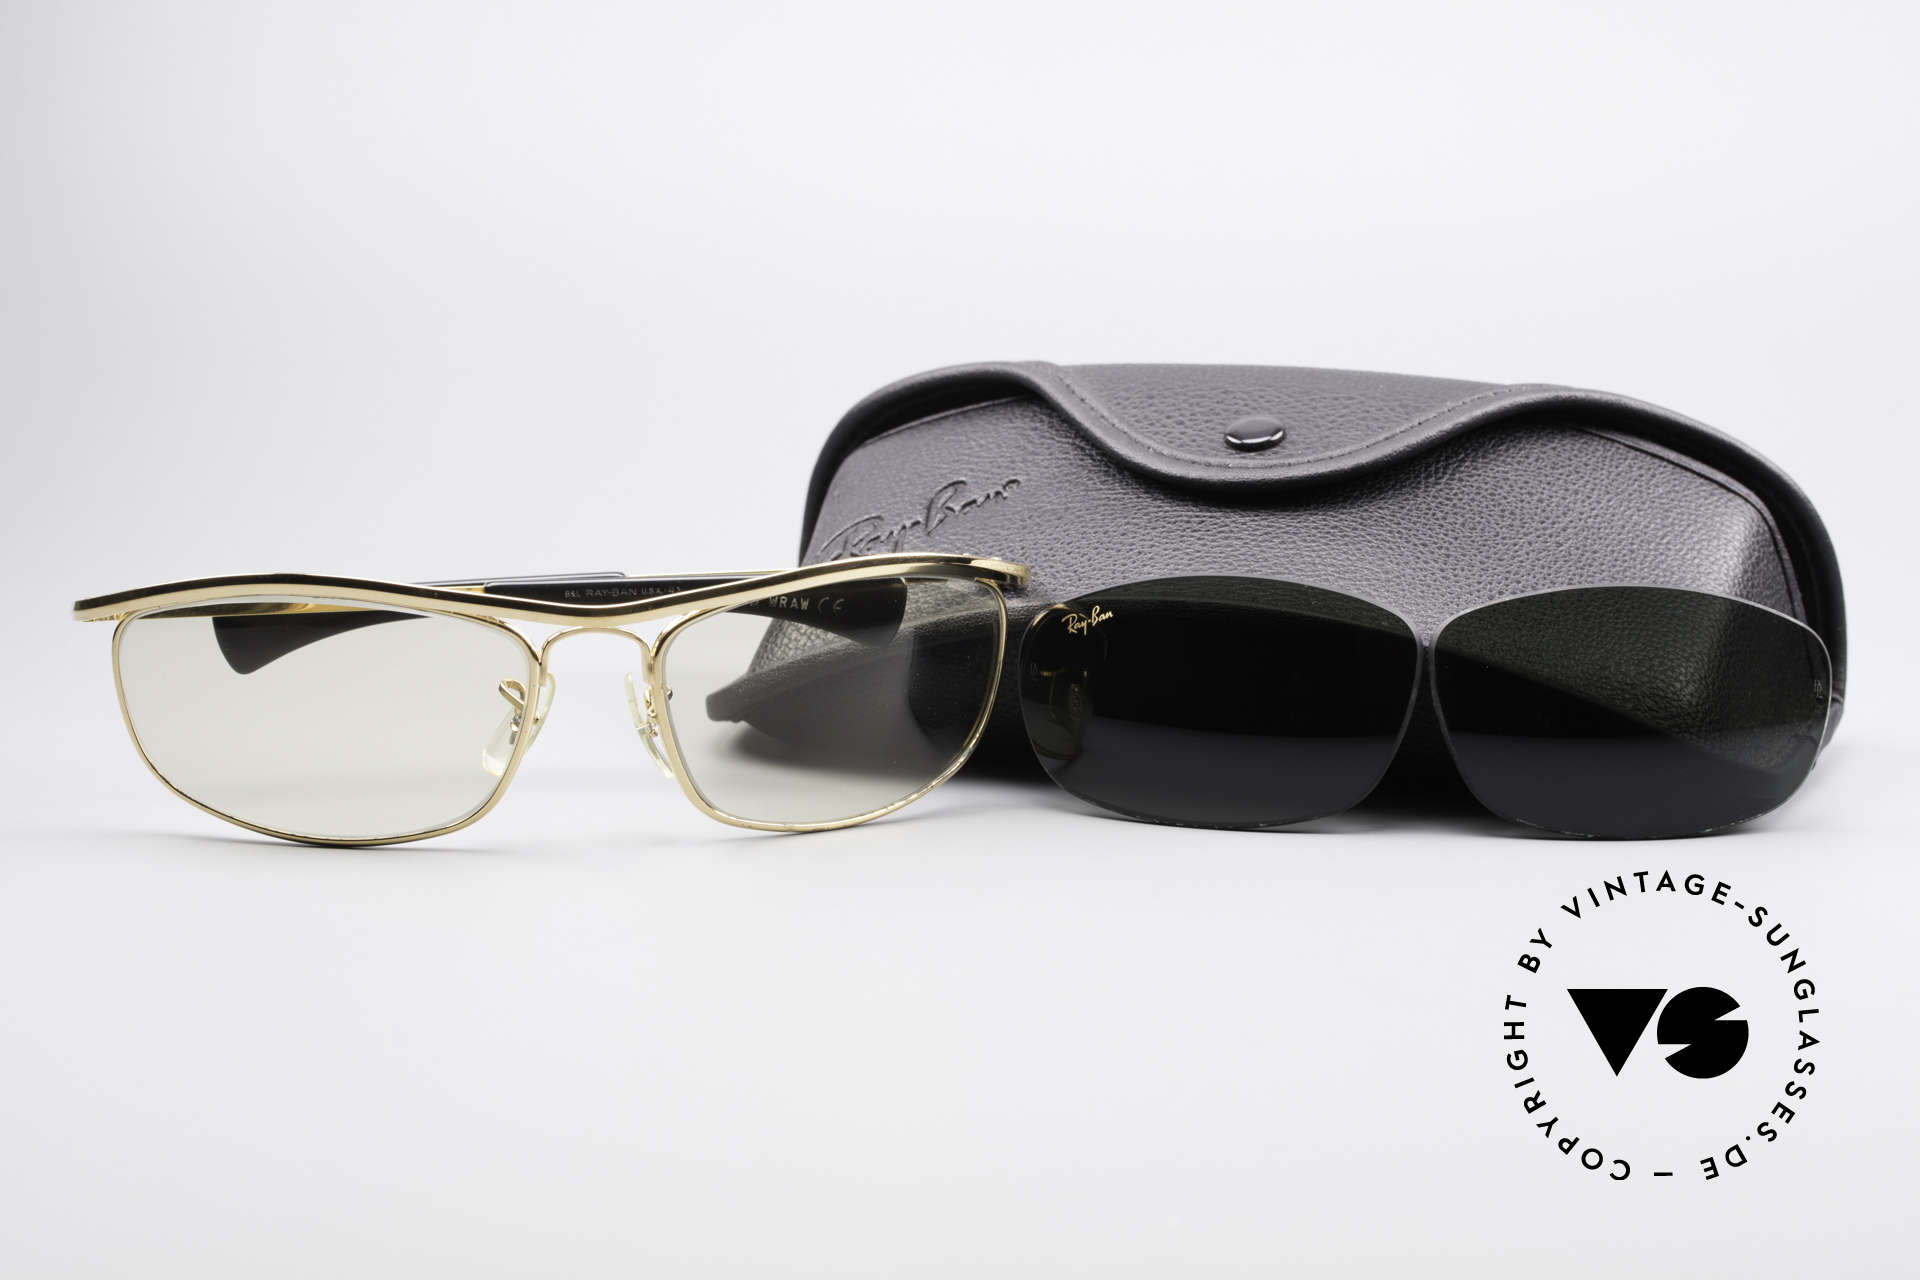 91dc8af0ba0 Ray Ban Olympian Ii Deluxe Easy Rider By B l - Restaurant and ...